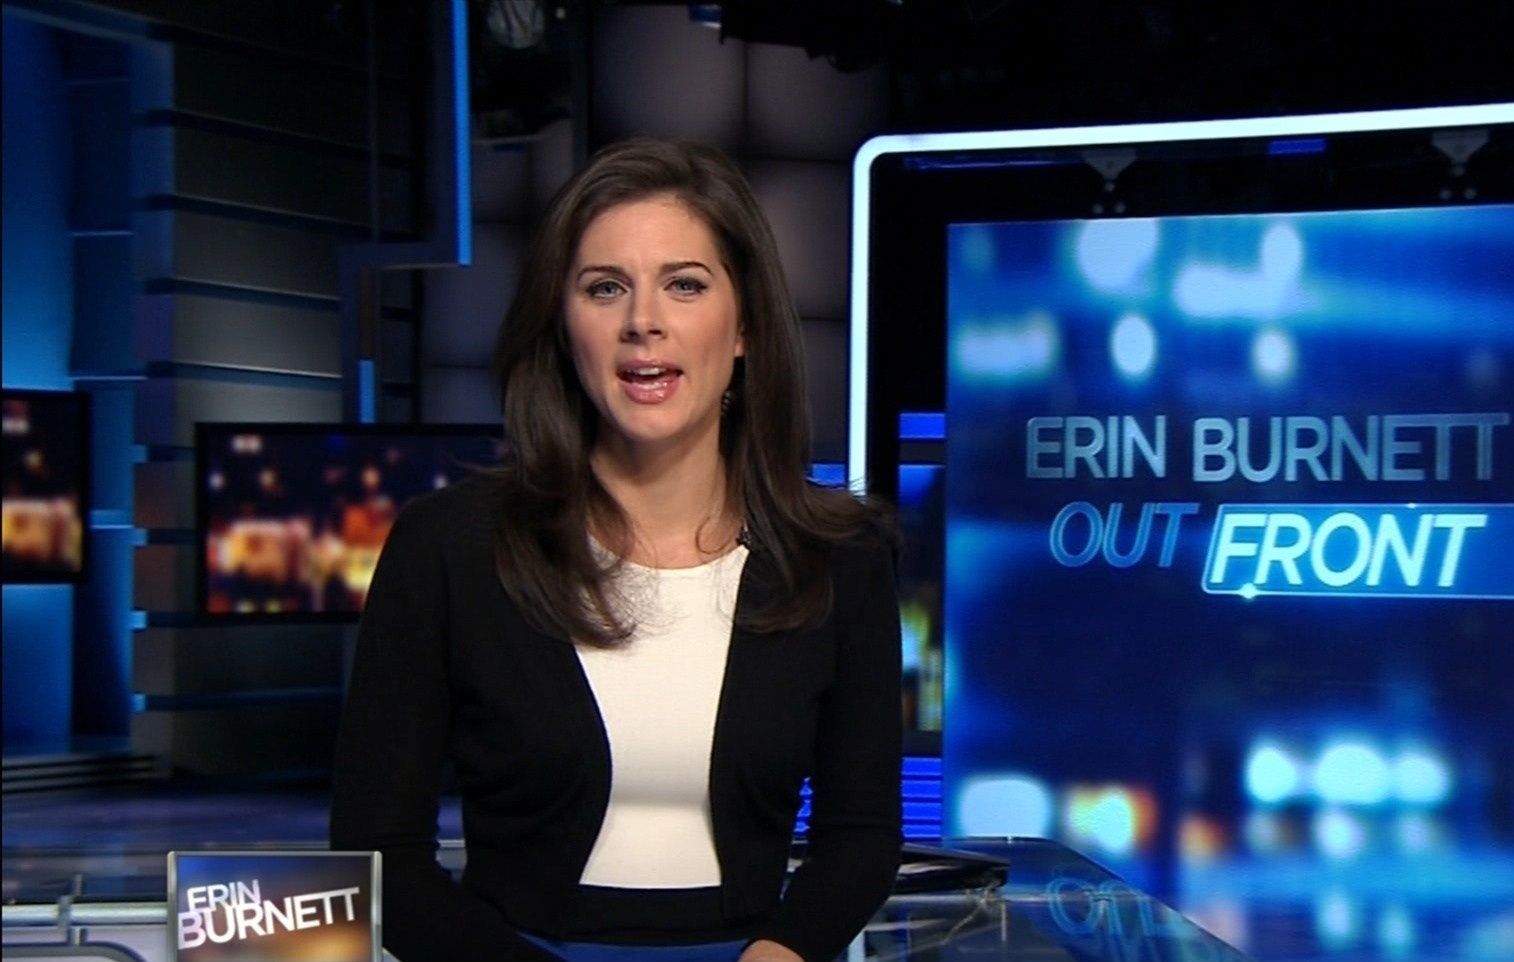 Erin Burnett Hot Bikini Pics, News Host Kissing Scene 18